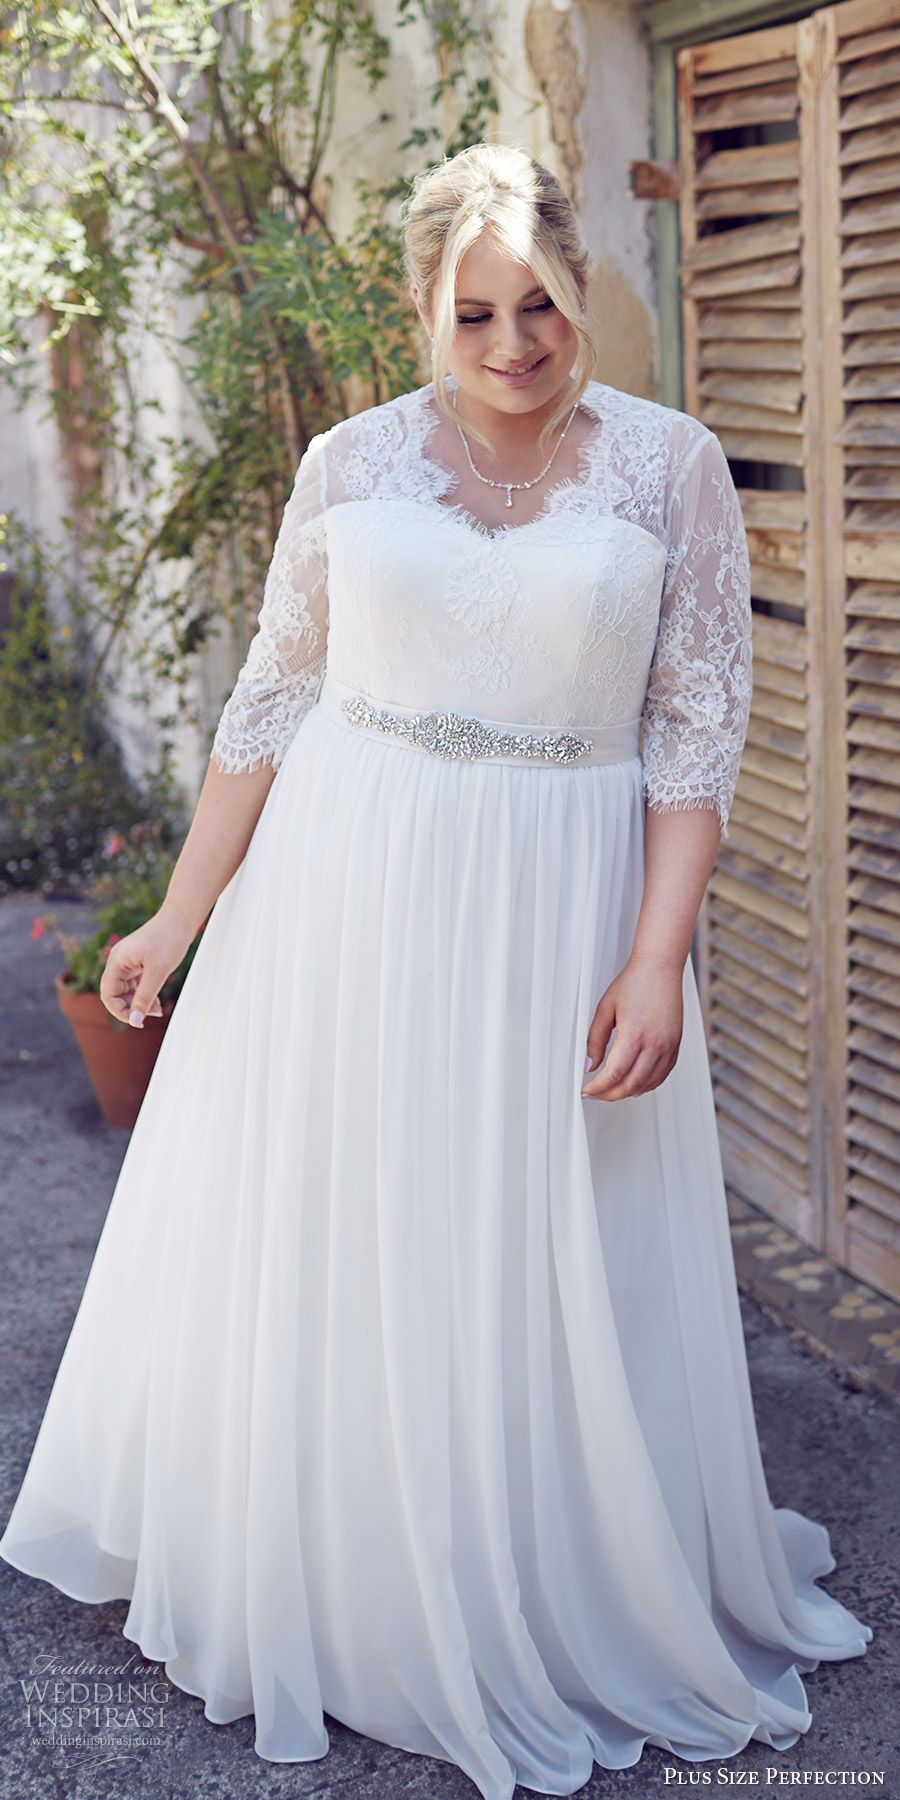 Plus size perfection wedding dresses its a love story plus size perfection wedding dresses its a love story campaign ombrellifo Image collections